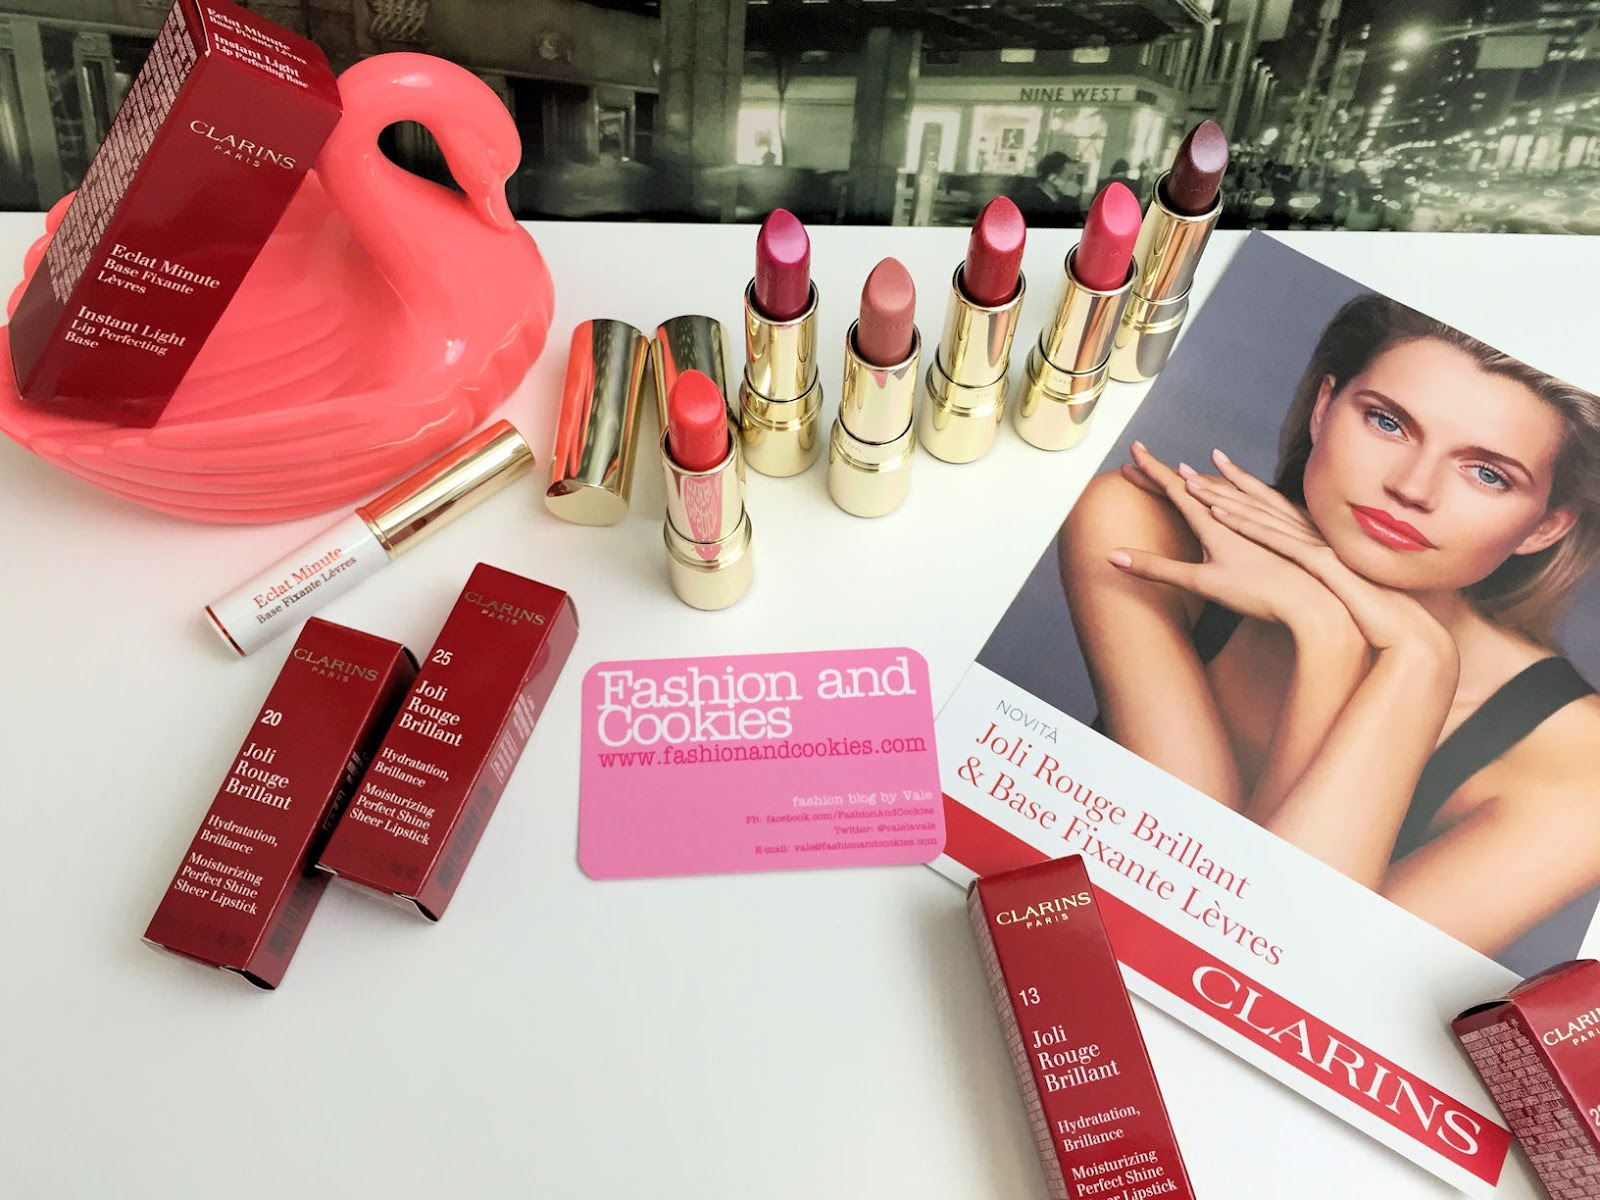 Clarins Joli Rouge Brillant rossetto e trattamento di bellezza per le labbra, review e swatches su Fashion and Cookies beauty blog, beauty blogger